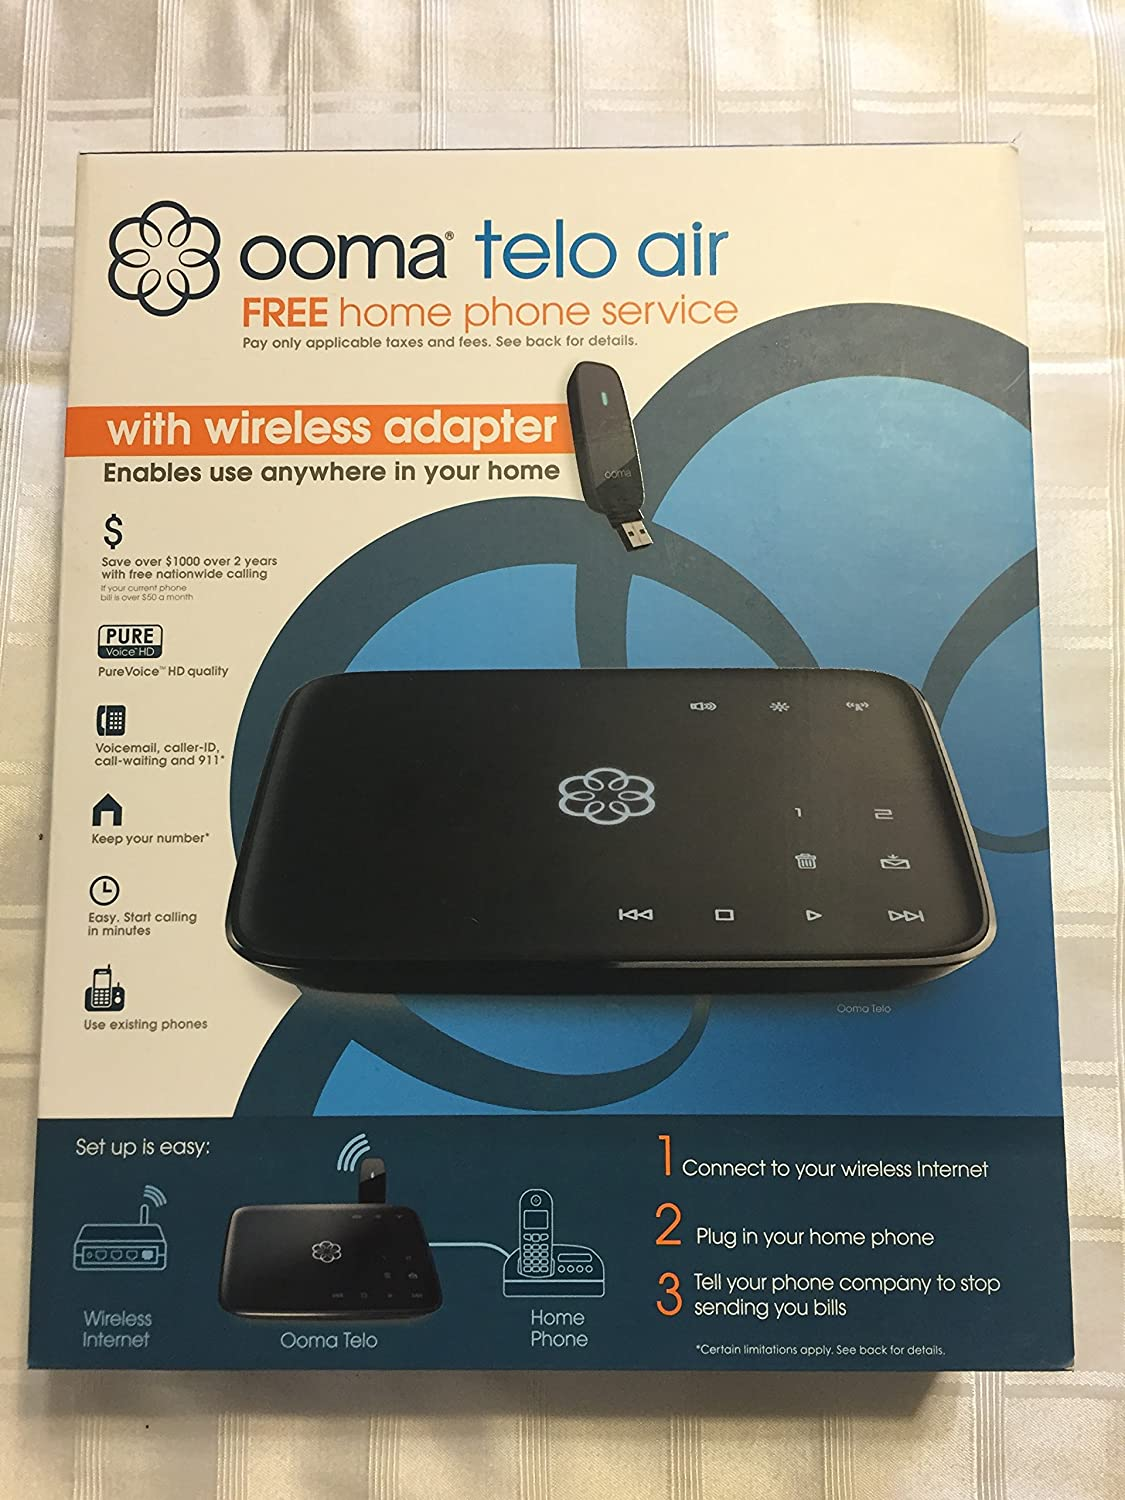 free home phone and internet service